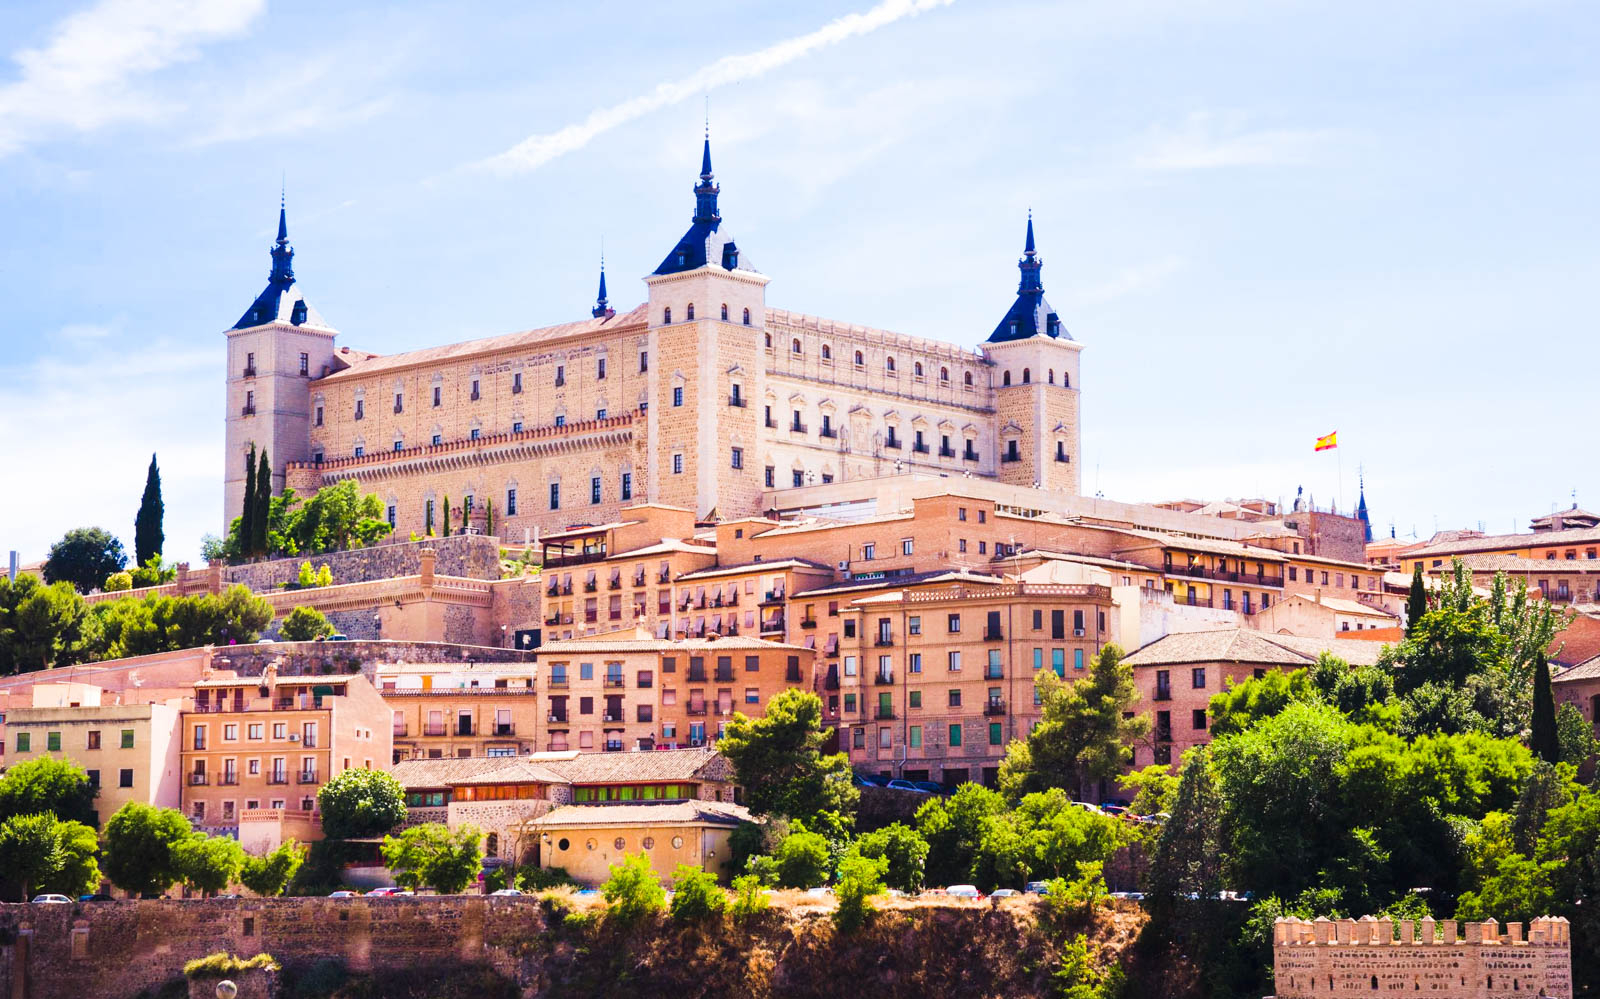 49227e3d 7c1e 480a 9e35 e61fea764a0c 9401 madrid toledo 3 cultures full day guided with traditional lunch 09